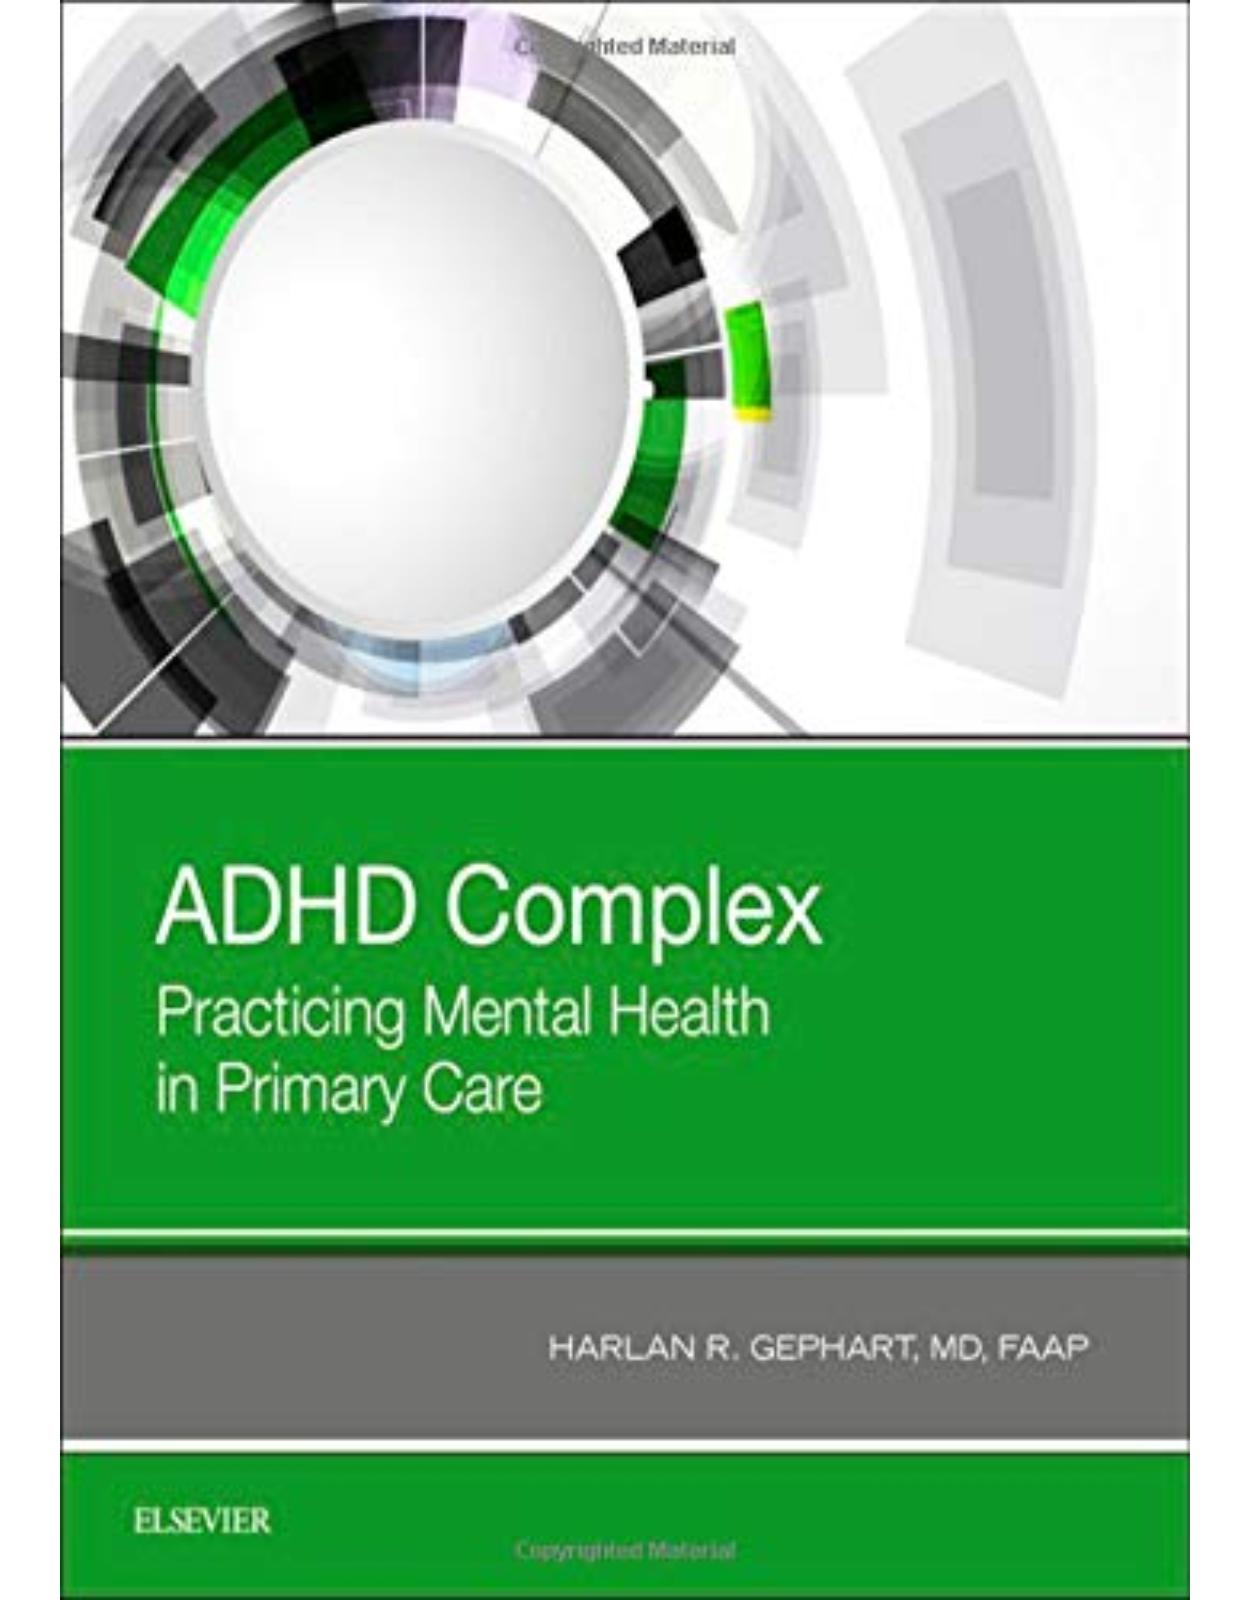 ADHD Complex, Practicing Mental Health in Primary Care